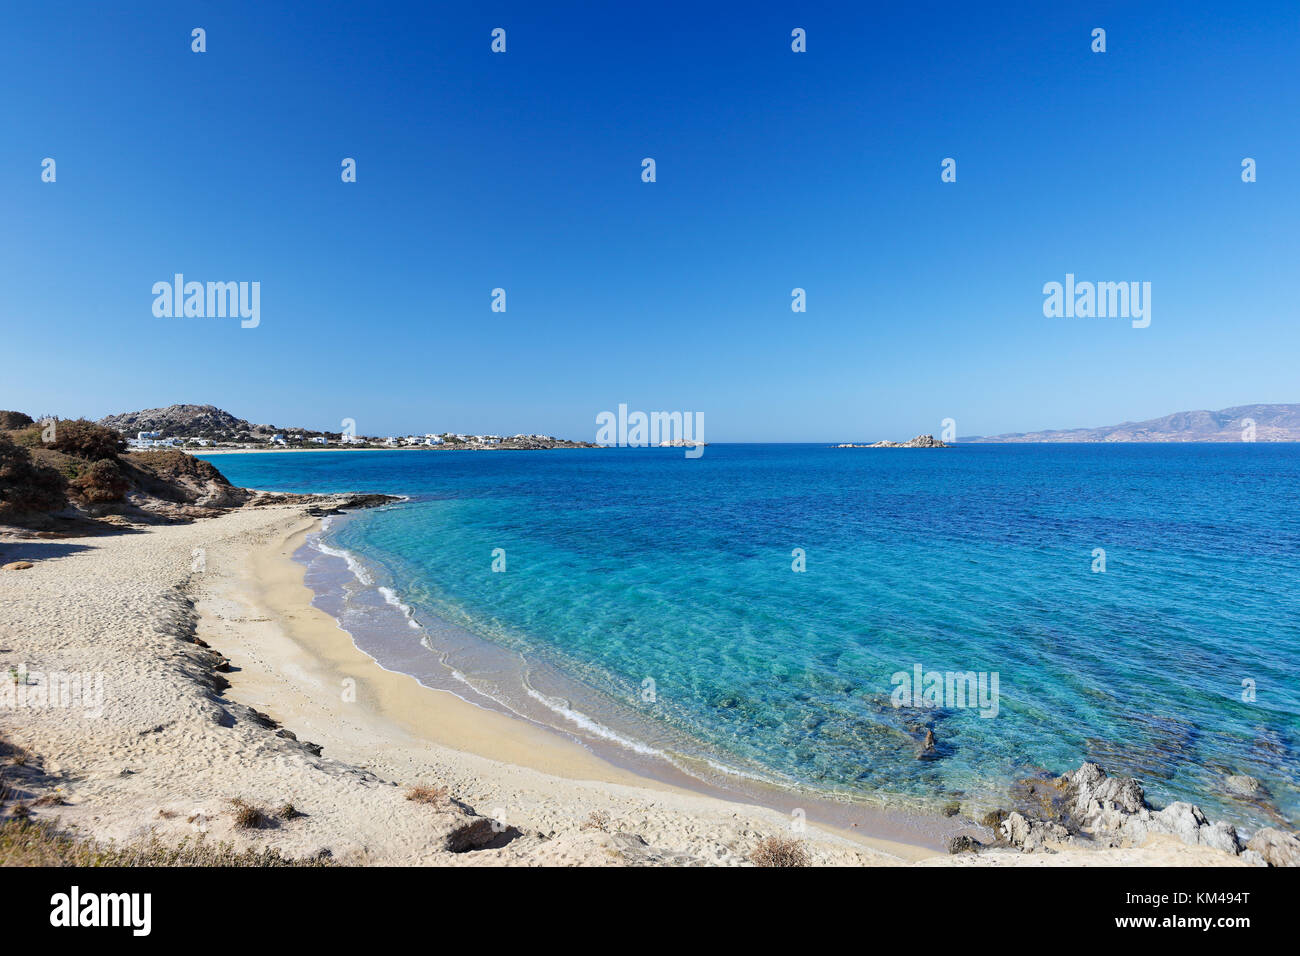 Orkos beach of Naxos island in Cyclades, Greece - Stock Image